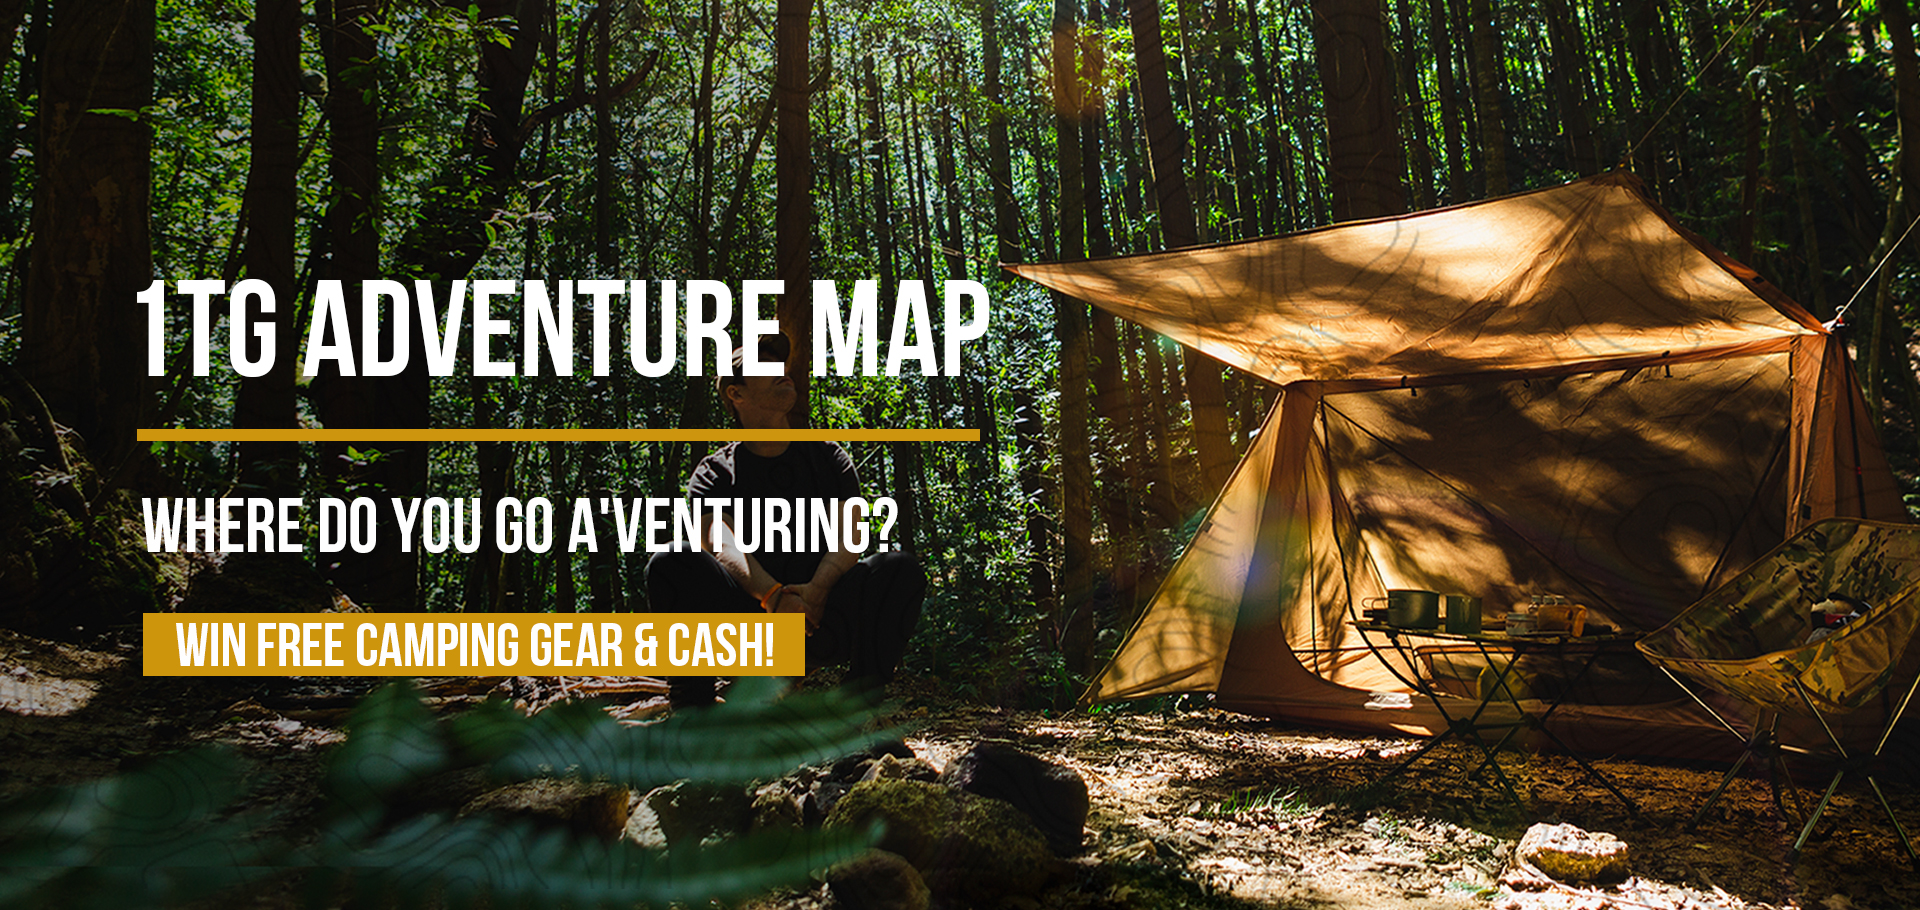 1TG Adventure Map, Camping Map, Camping, Tent, Good Camping Site